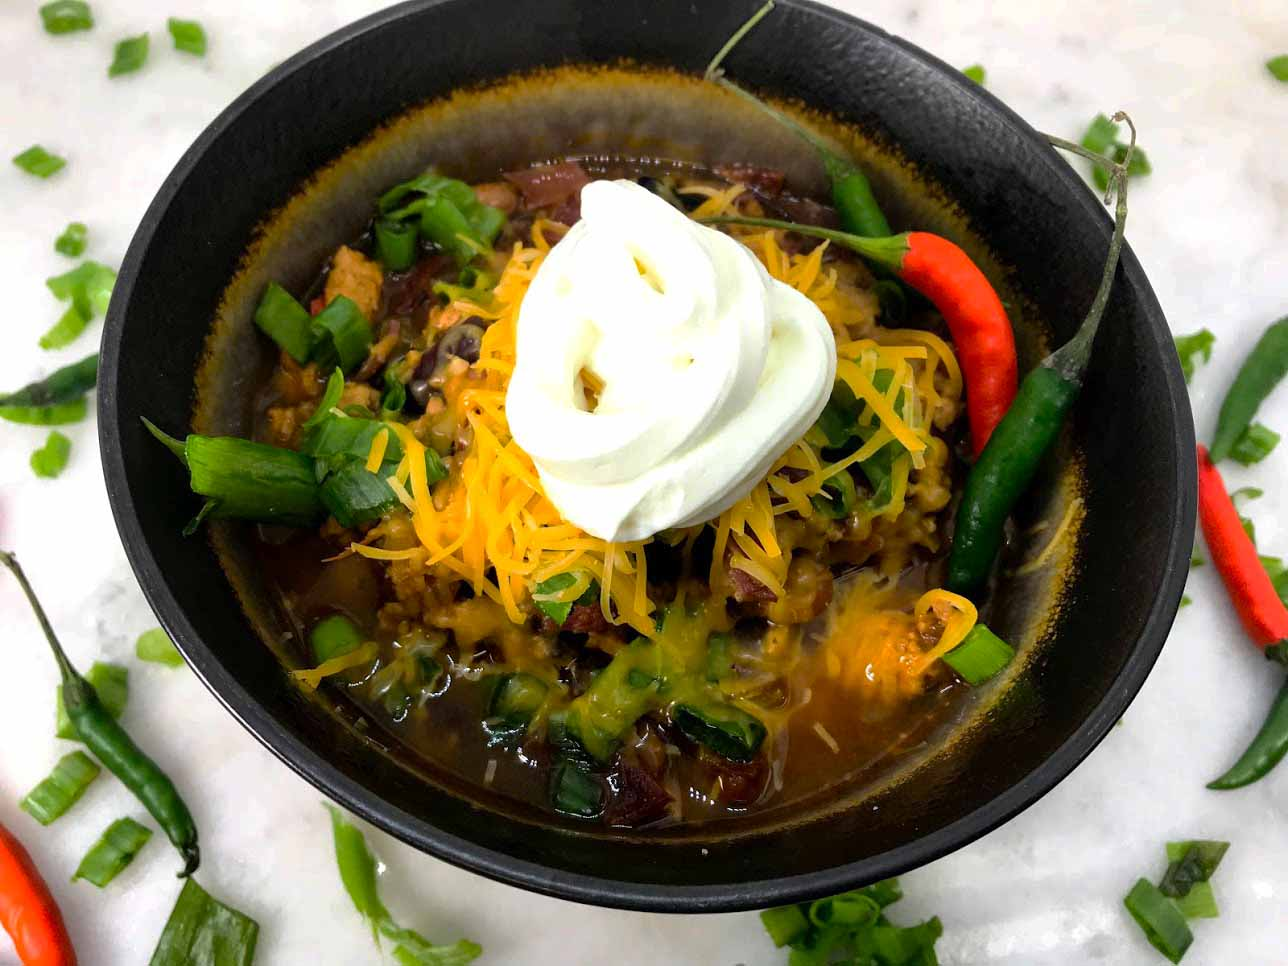 Instant Pot Lean Protein Chili with Thai Chili Peppers